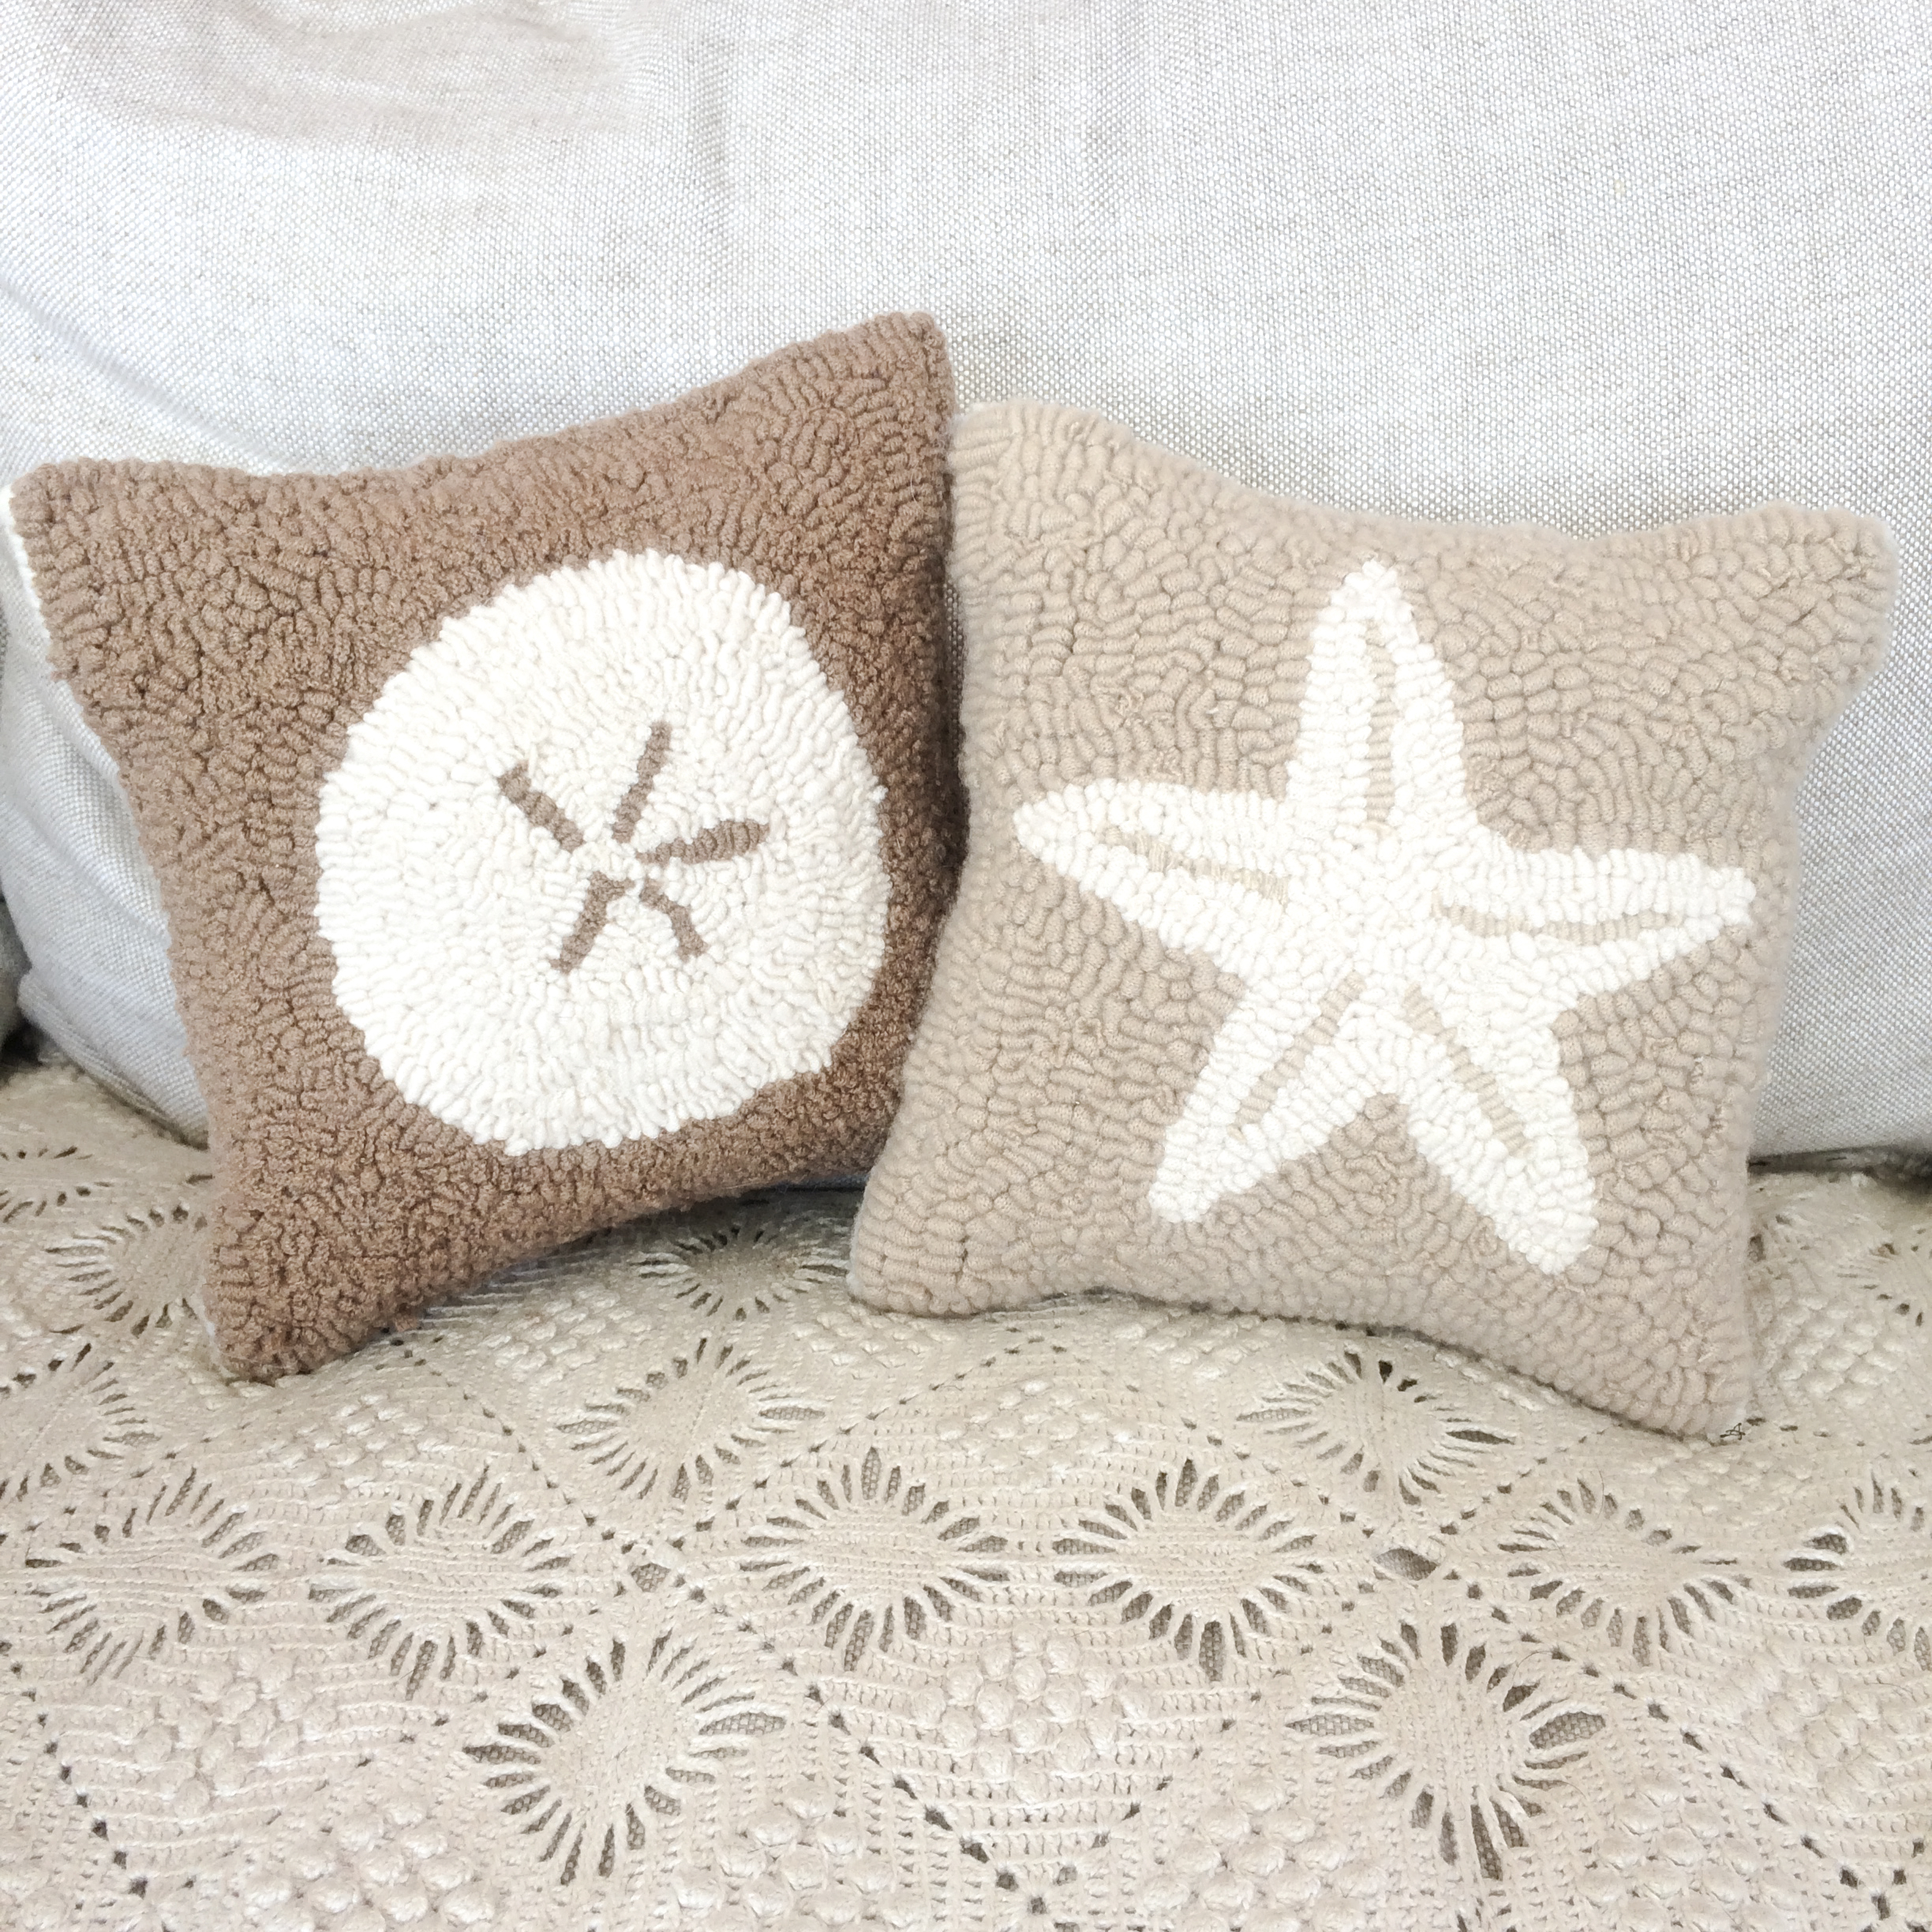 outside beach pillow turq diy pillows stitches doodles